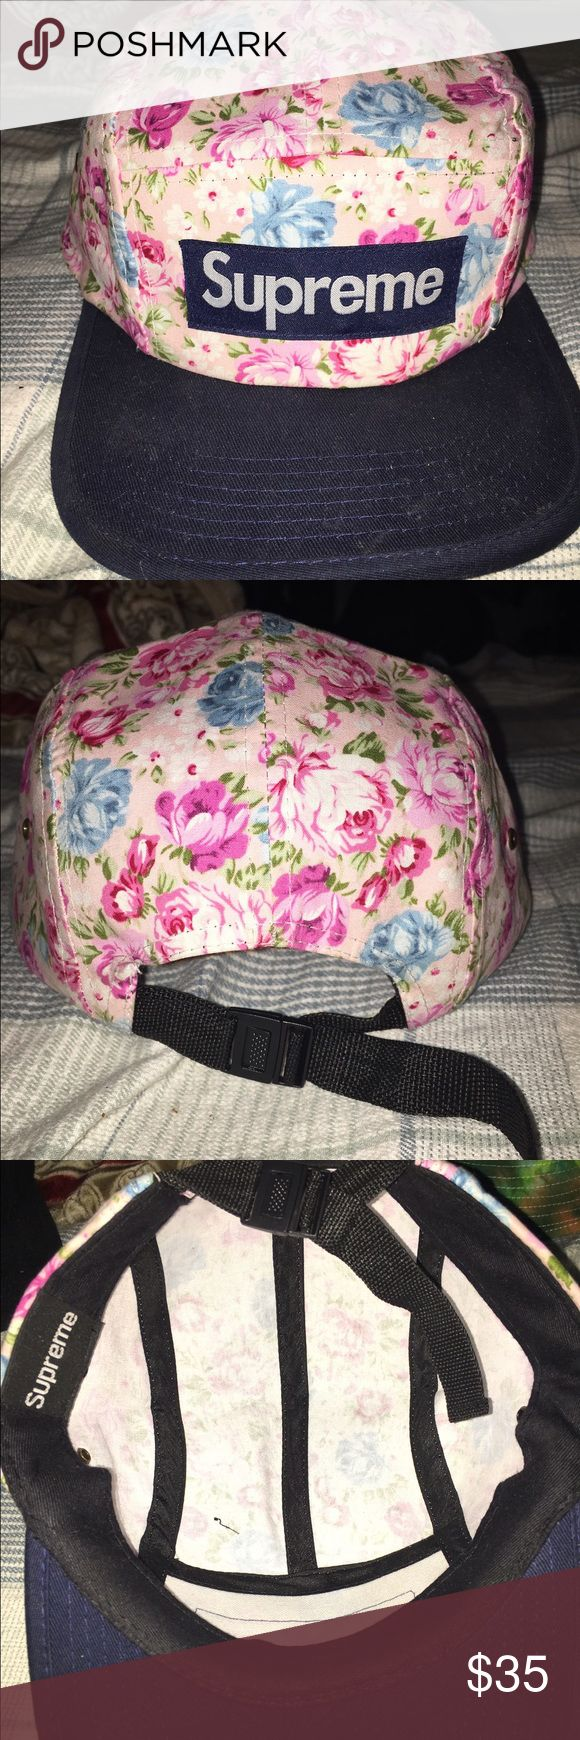 Supreme Hat Selling this floral designed supreme hat that i no longer wear. sadly flag was torn off by the person that had this before me. but in great condition. BEST OFFER. Supreme Accessories Hats